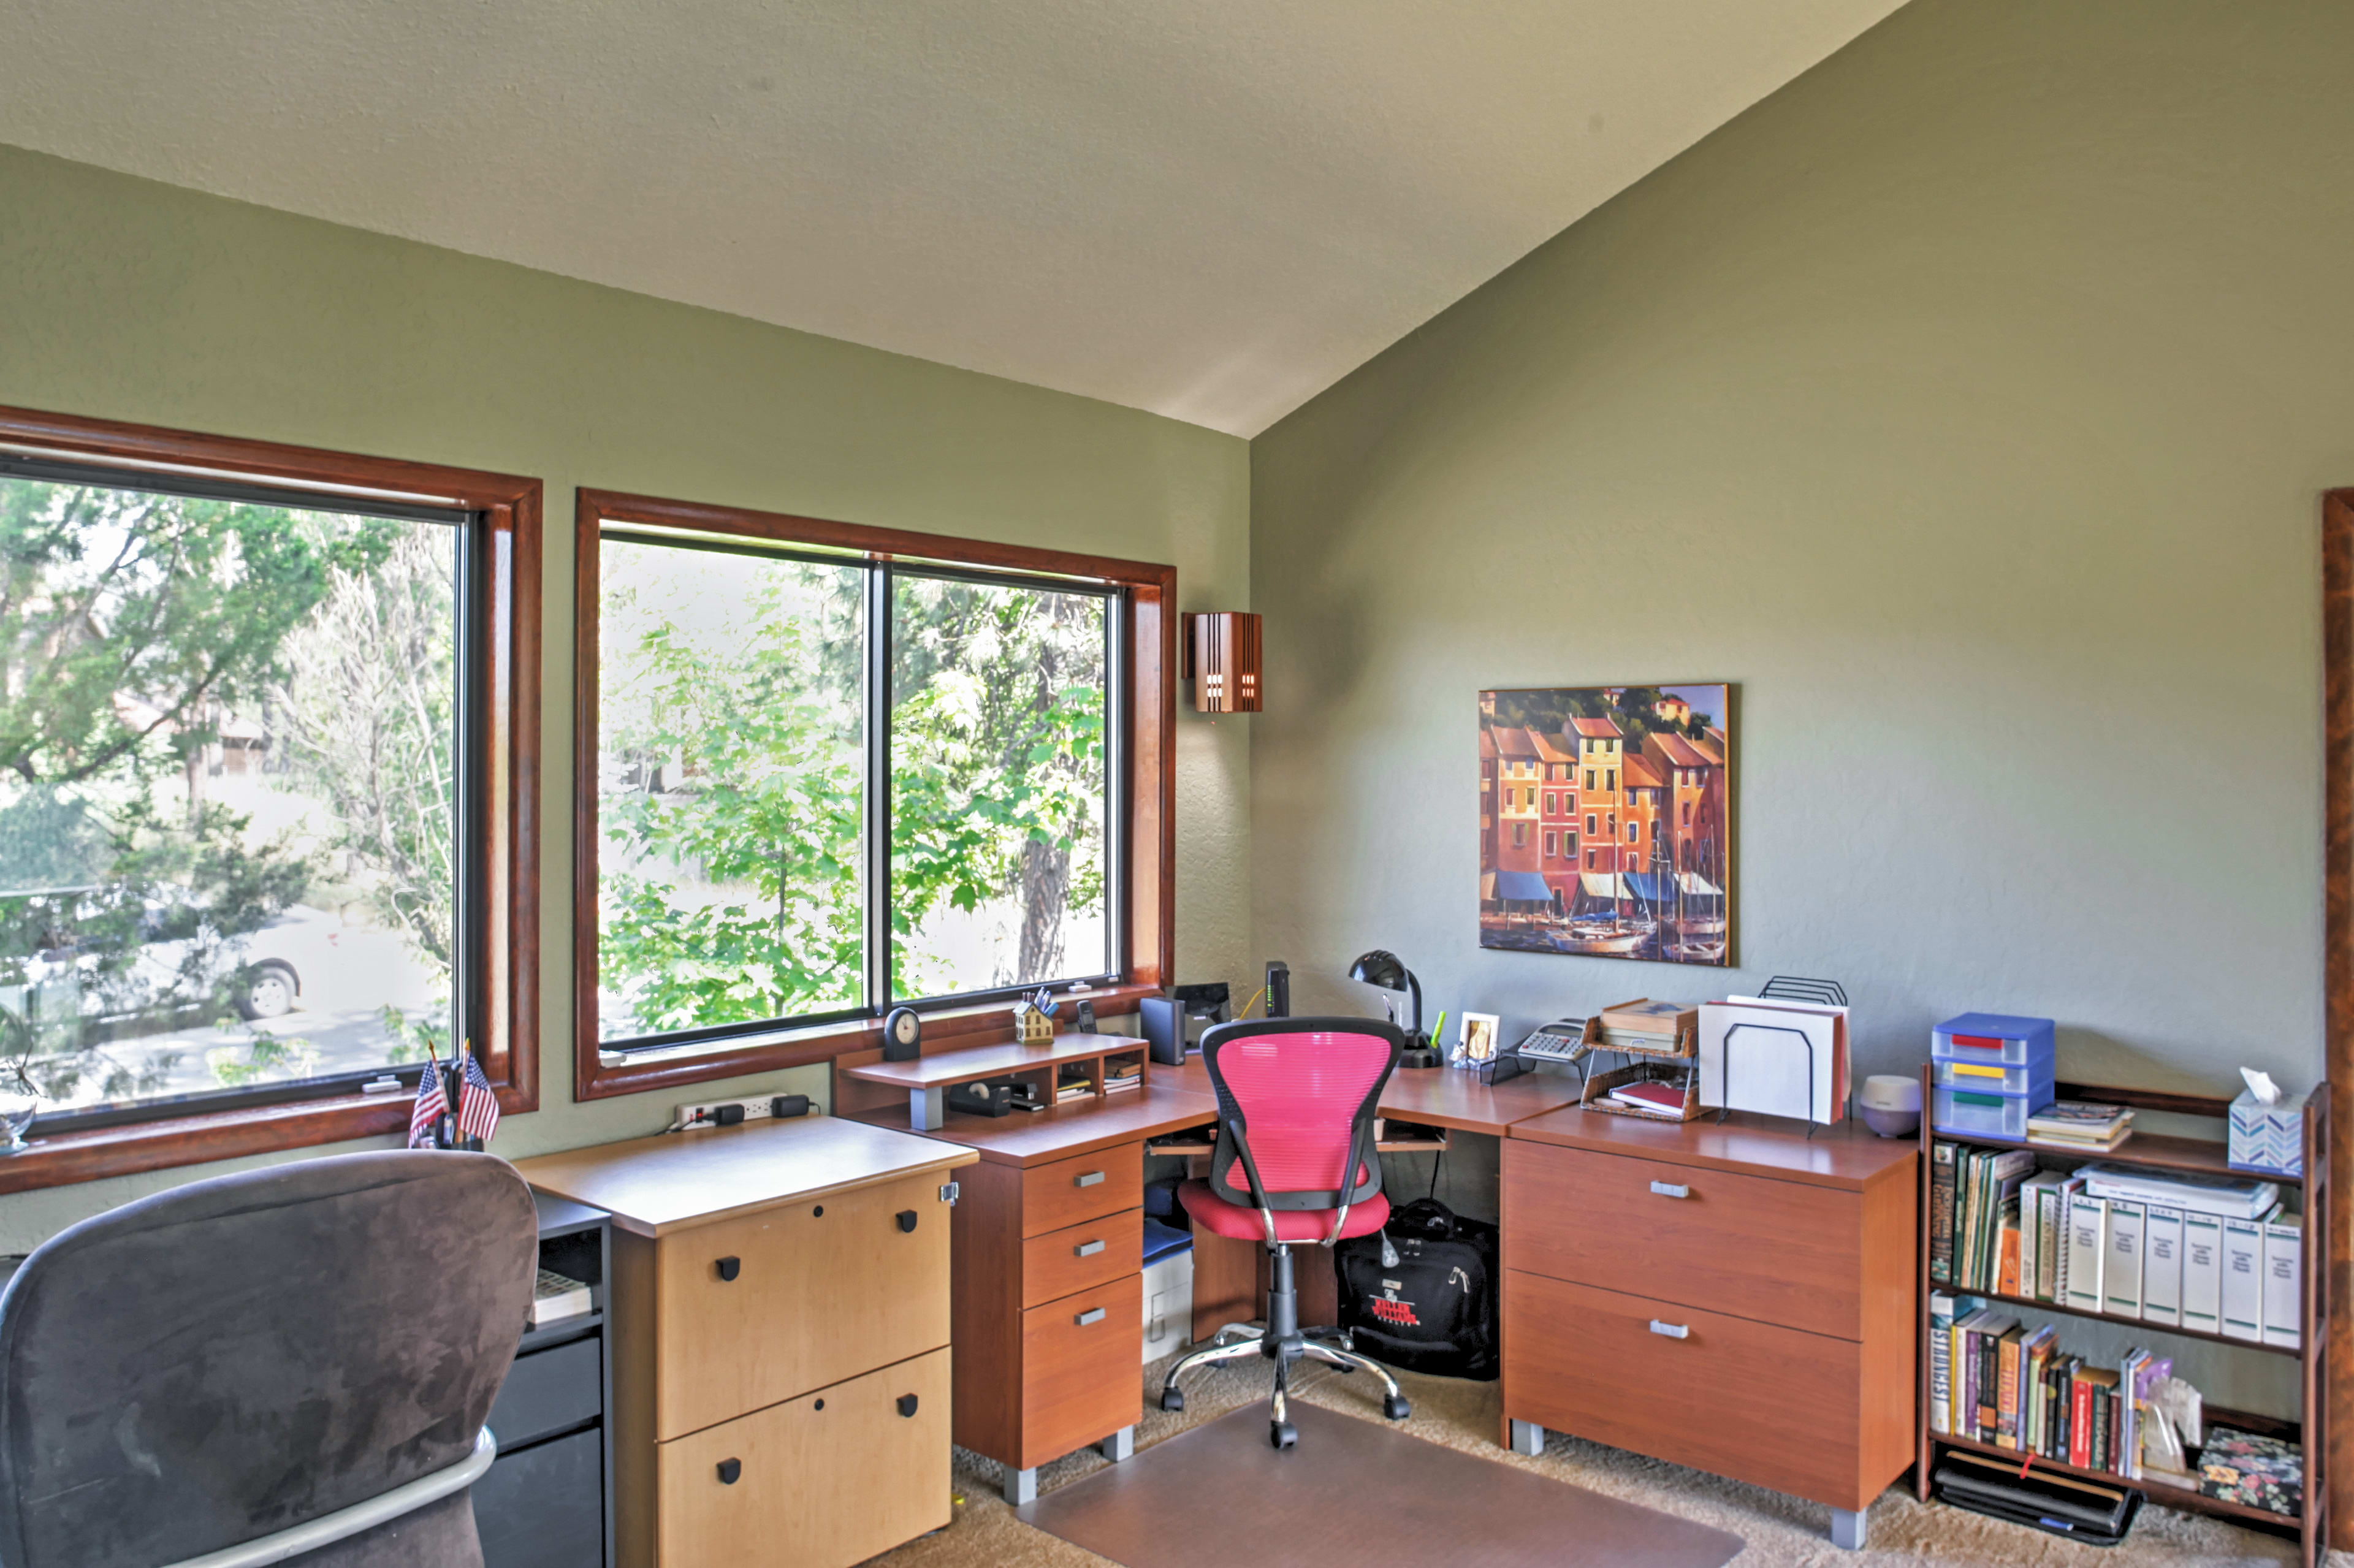 Get in a power hour of work in the office with 2 desks.